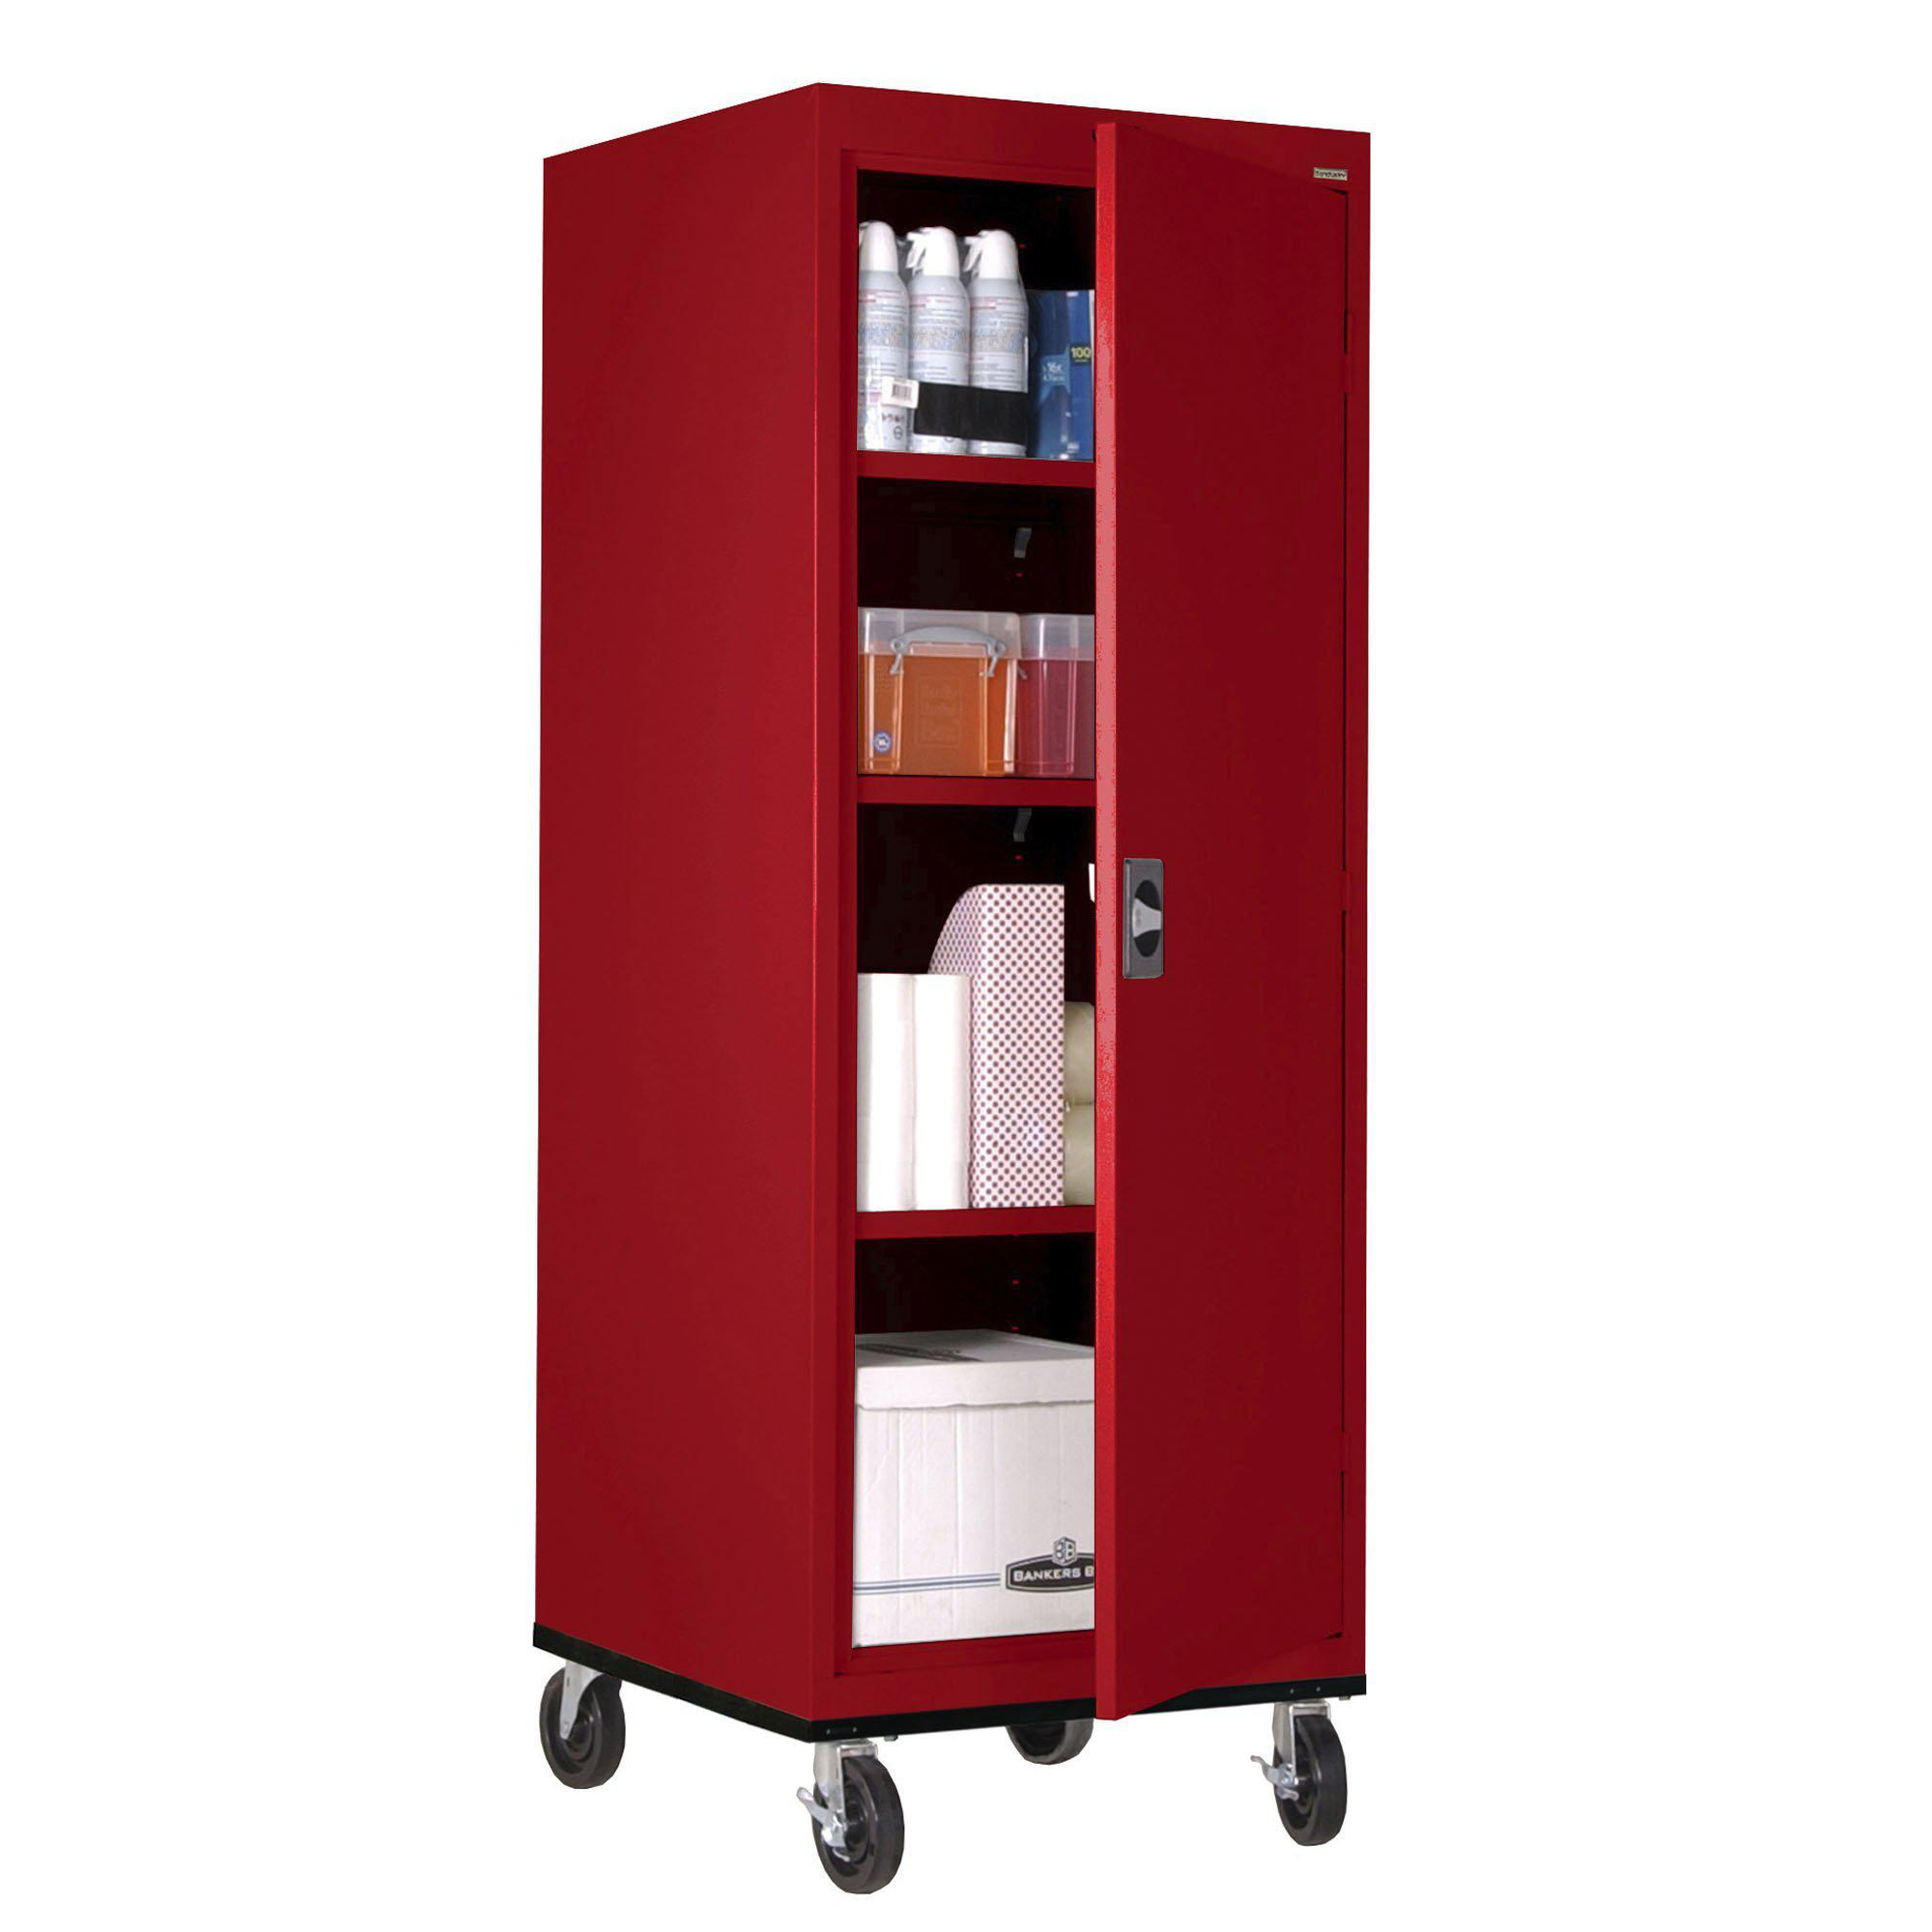 Transport Series Storage Cabinet, 24 x 24 x 60, Red